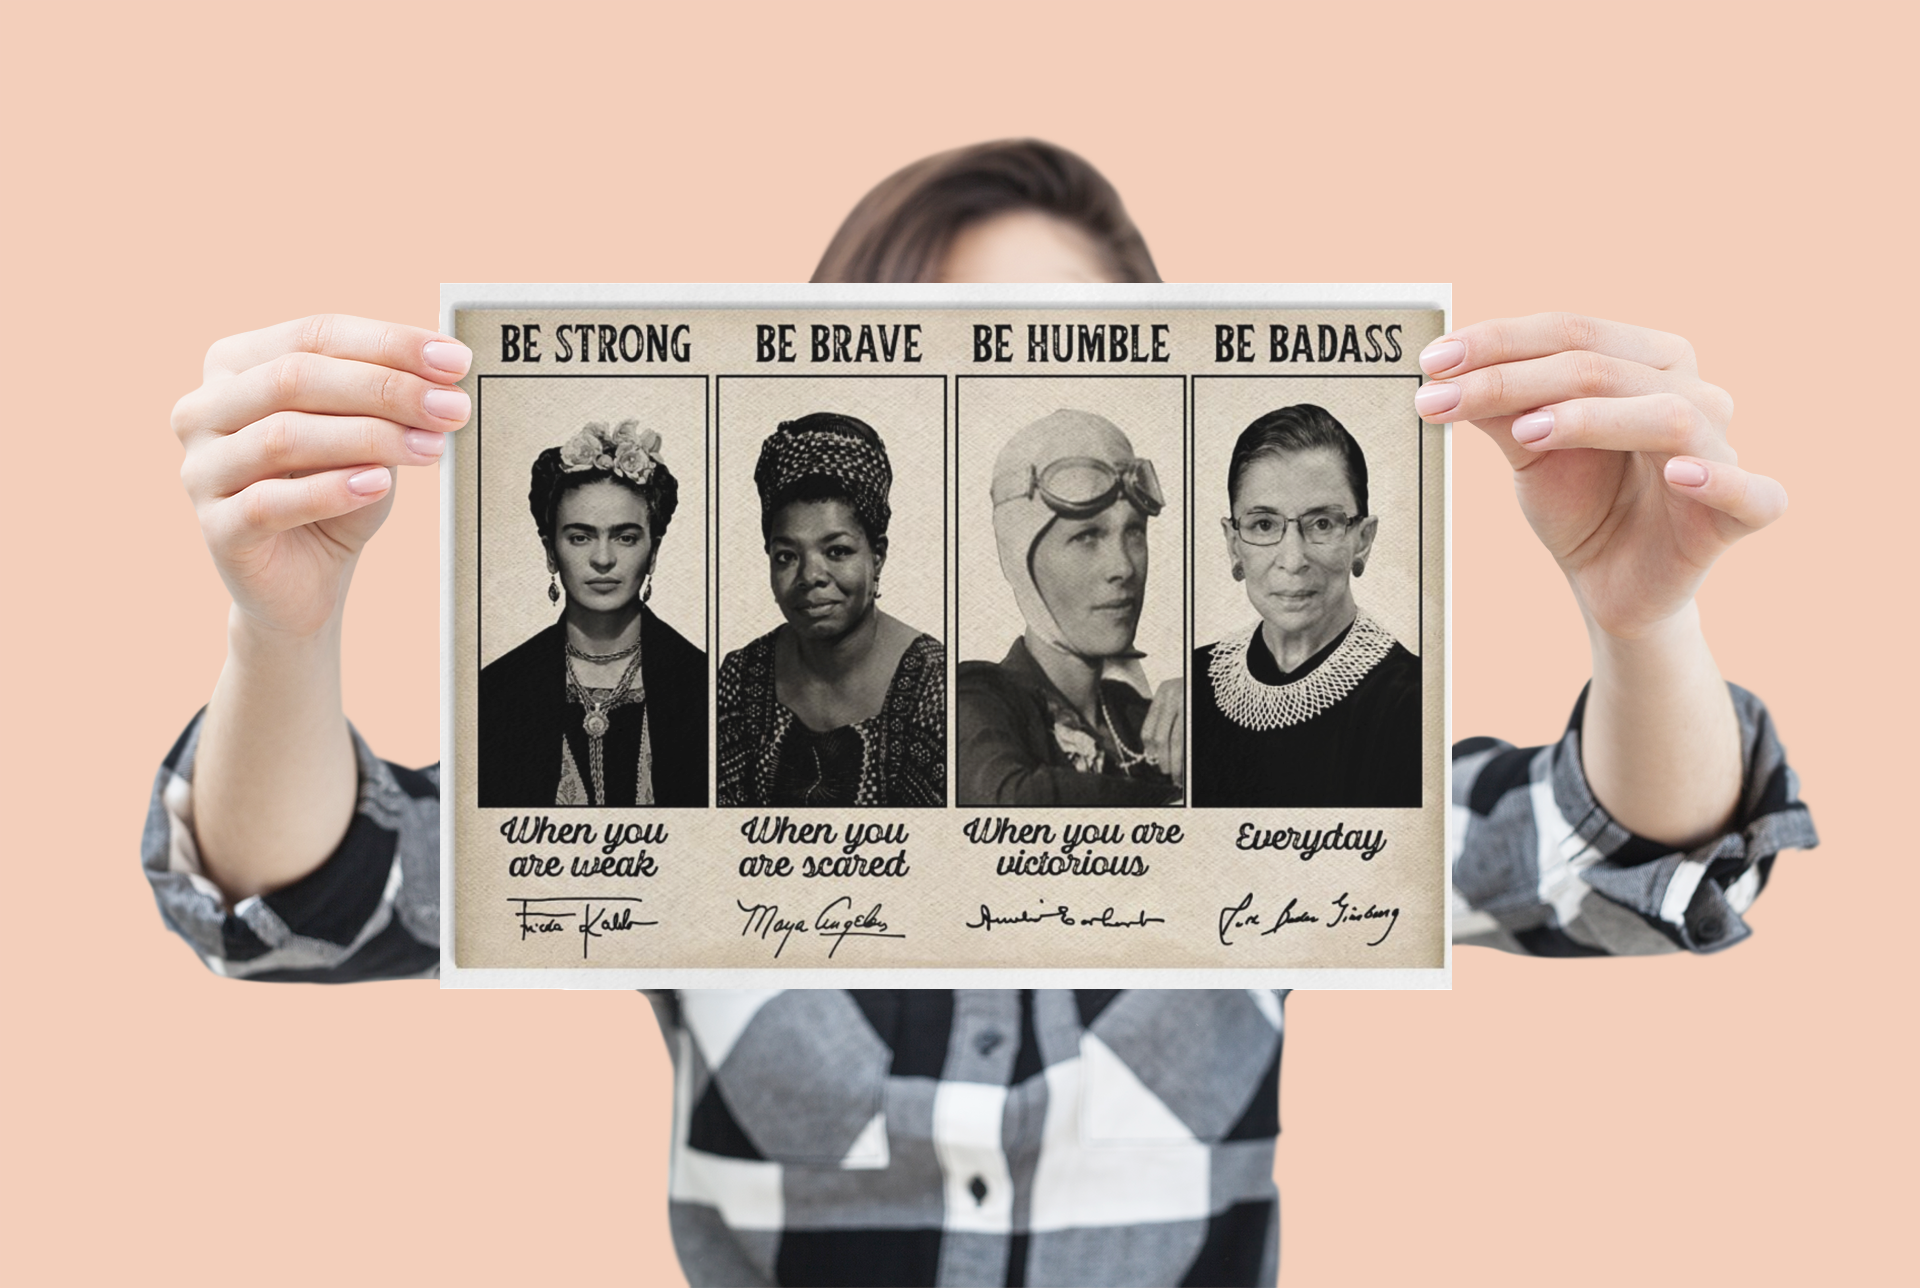 [LIMITED EDITION] Famous Woman feminist  be strong be brave be humble be badass poster